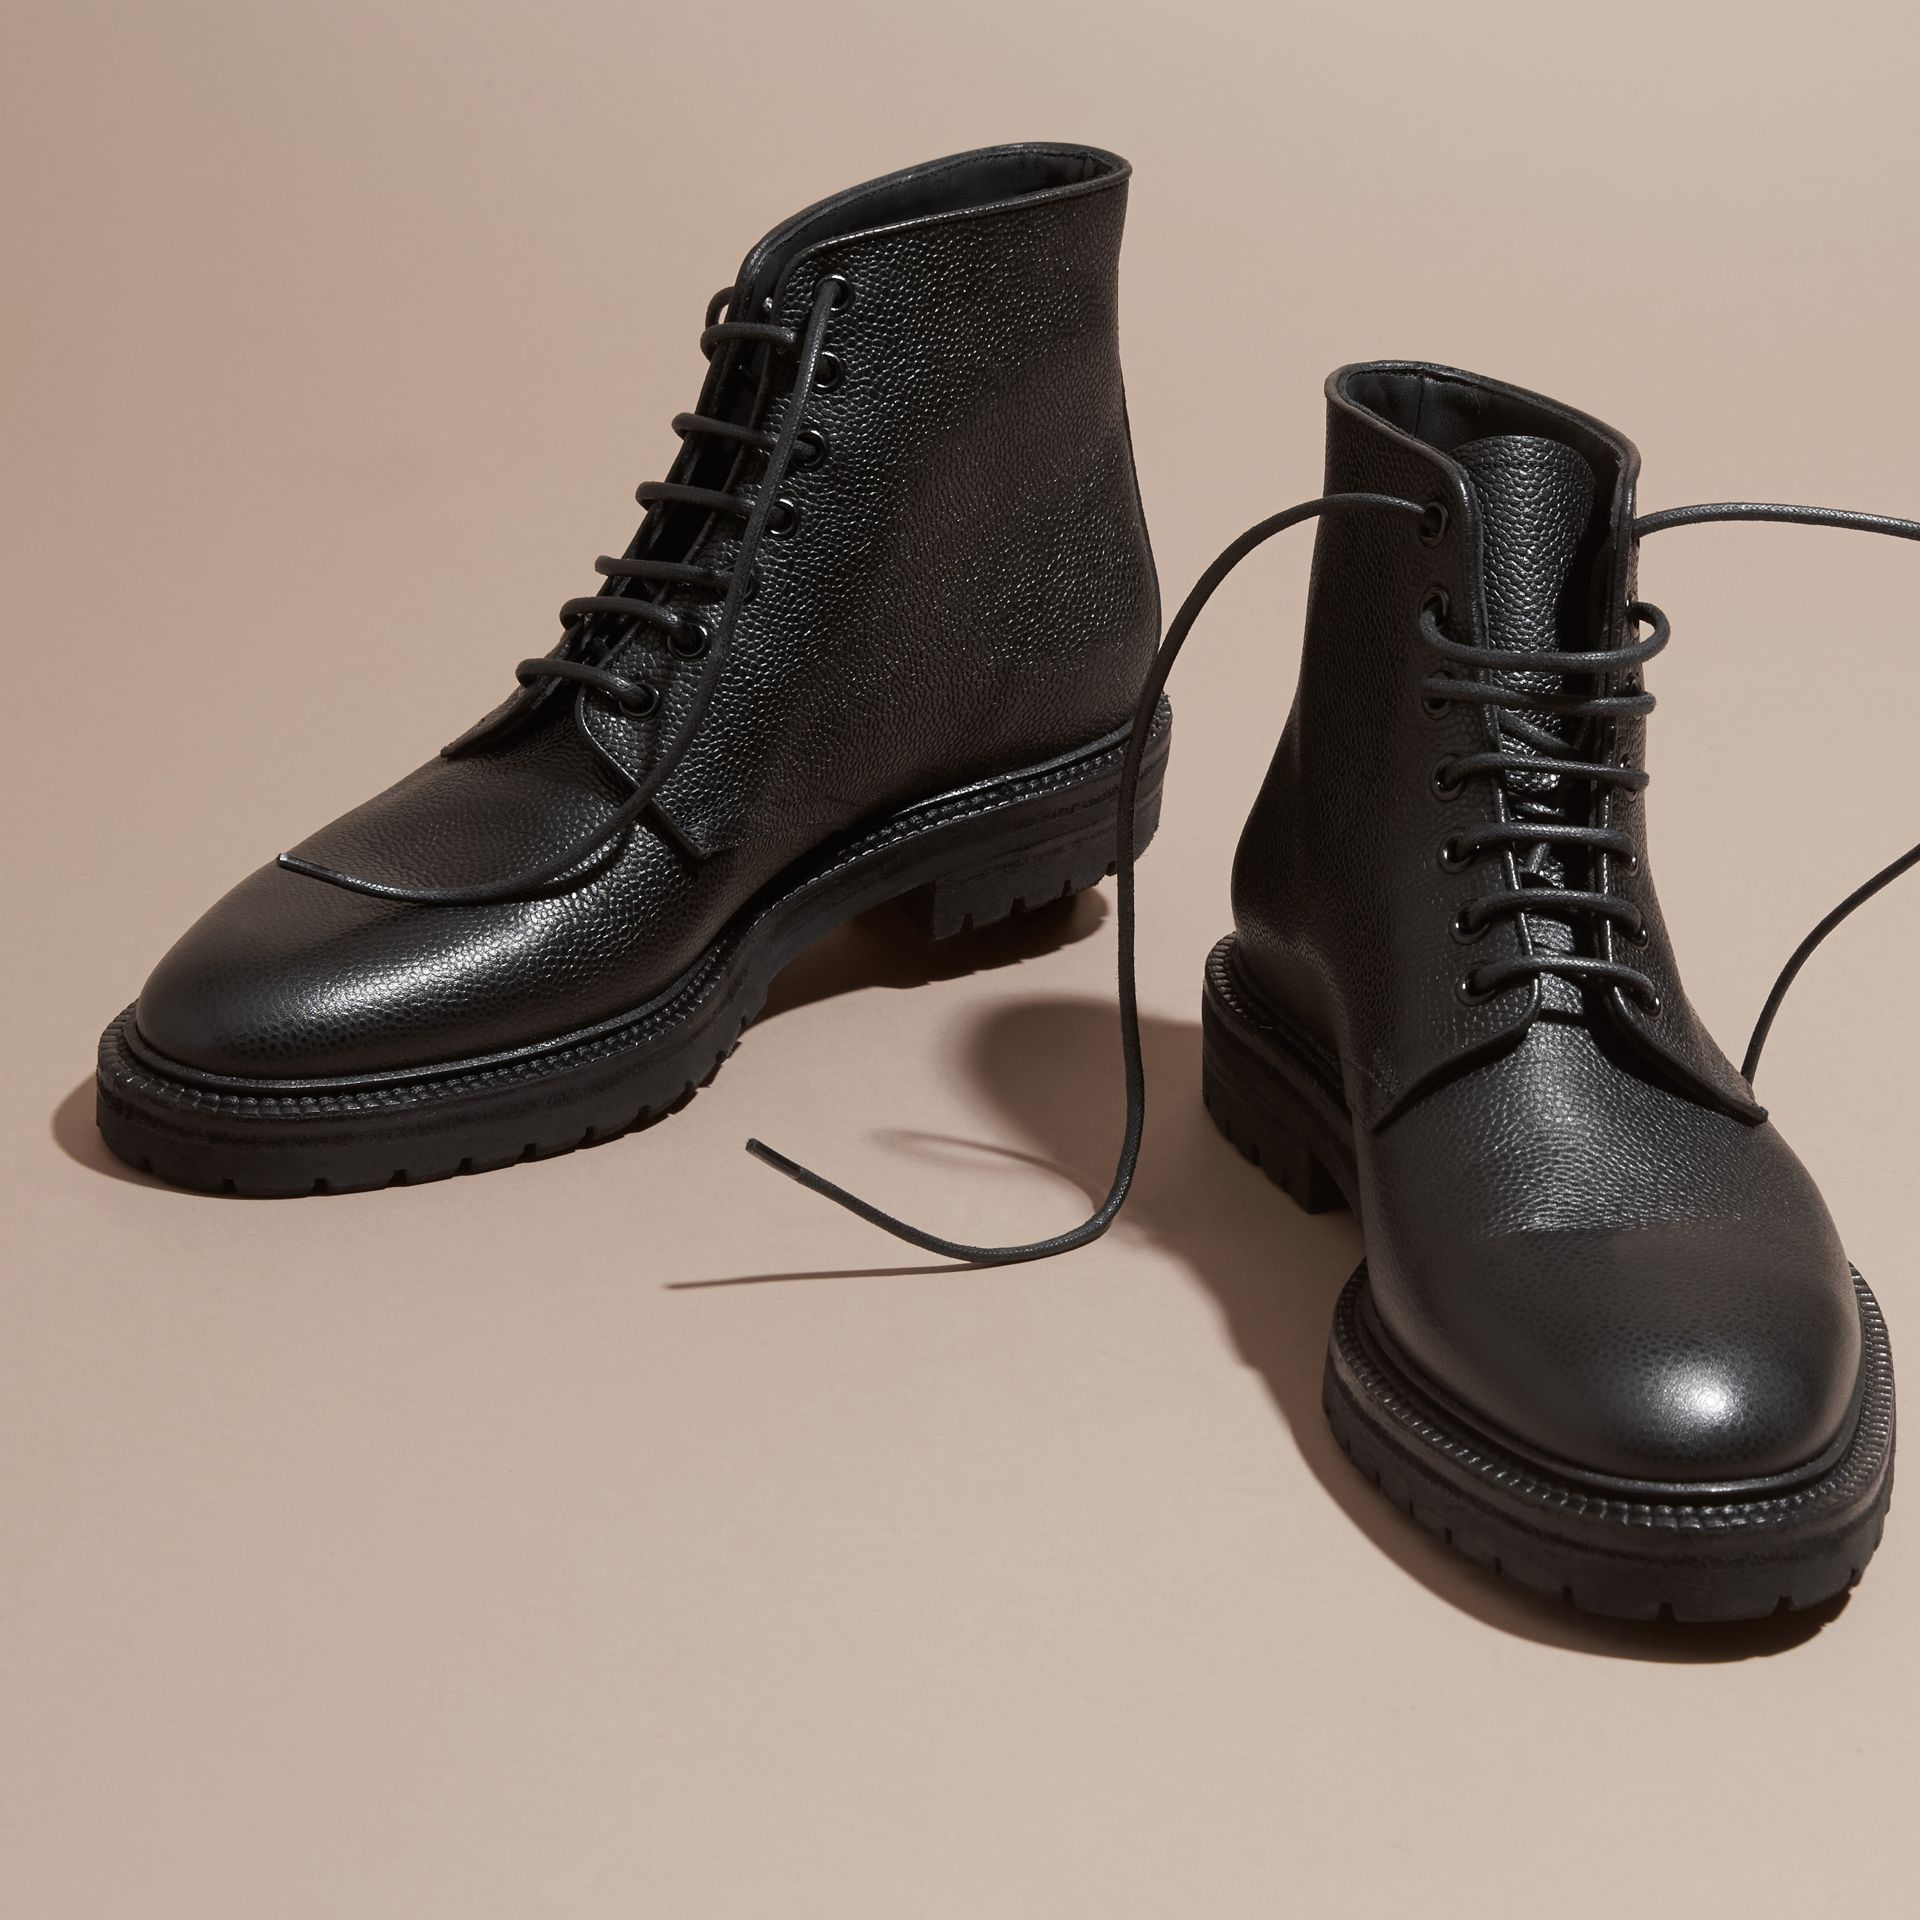 Black Lace-up Grainy Leather Boots Black - gallery image 3